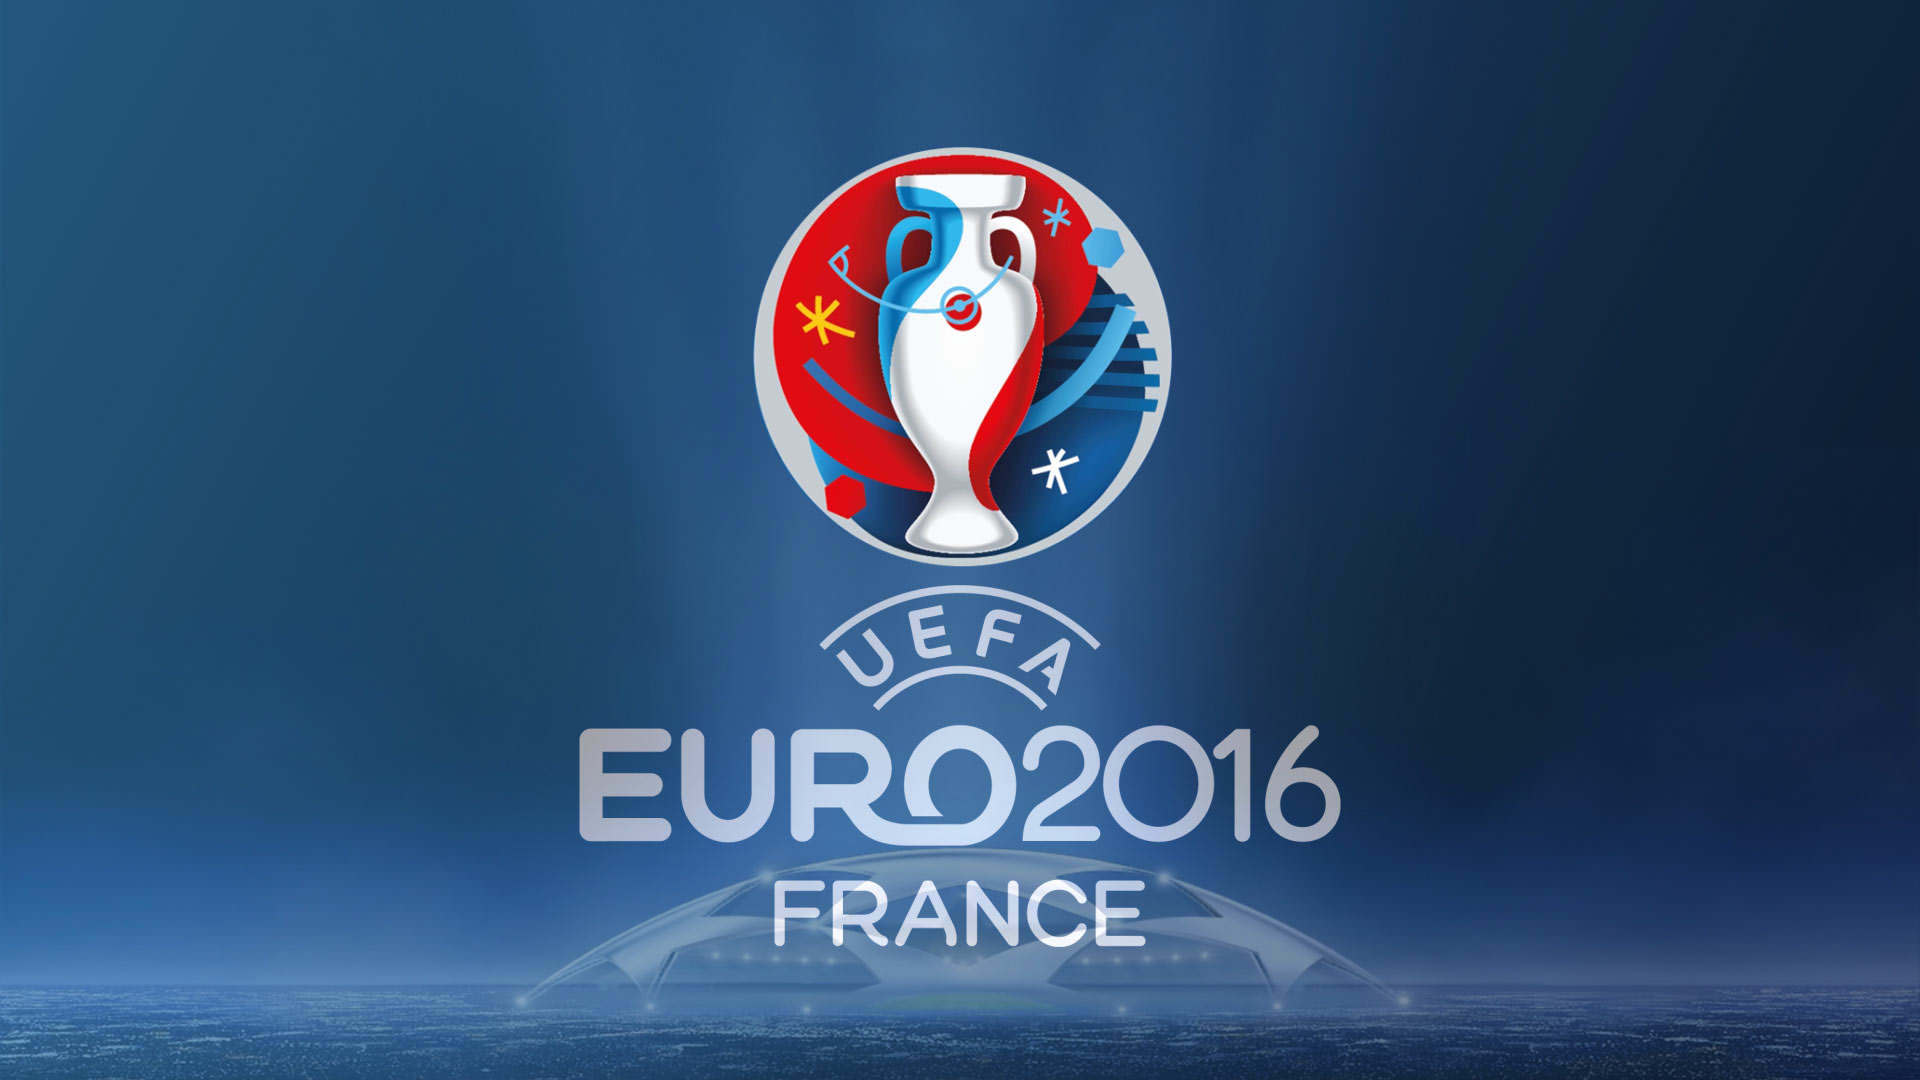 Euro 2016 Wallpapers